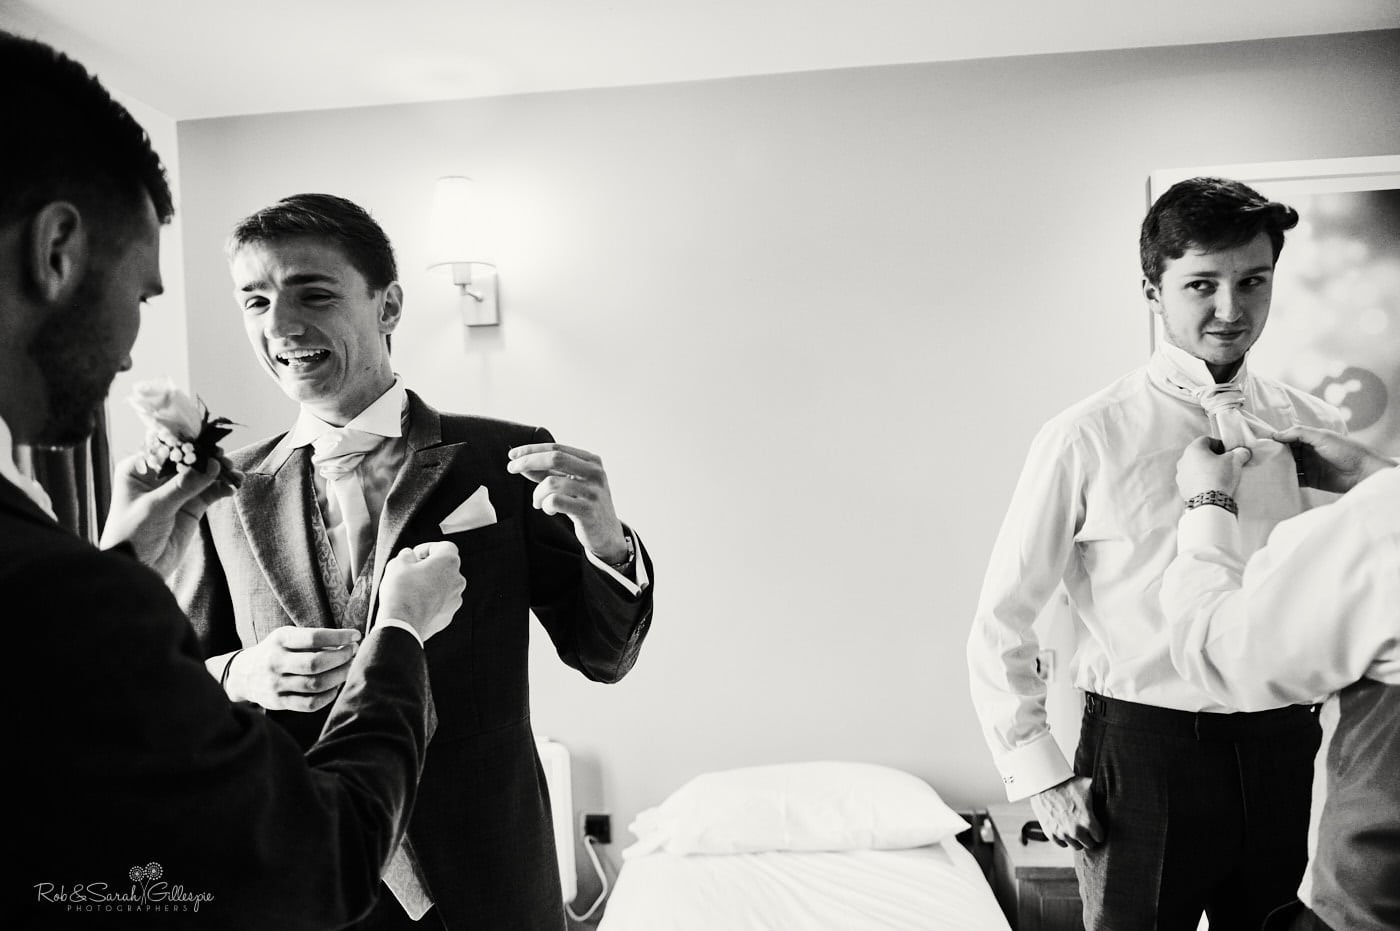 Groomsmen prepare for wedding in hotel room